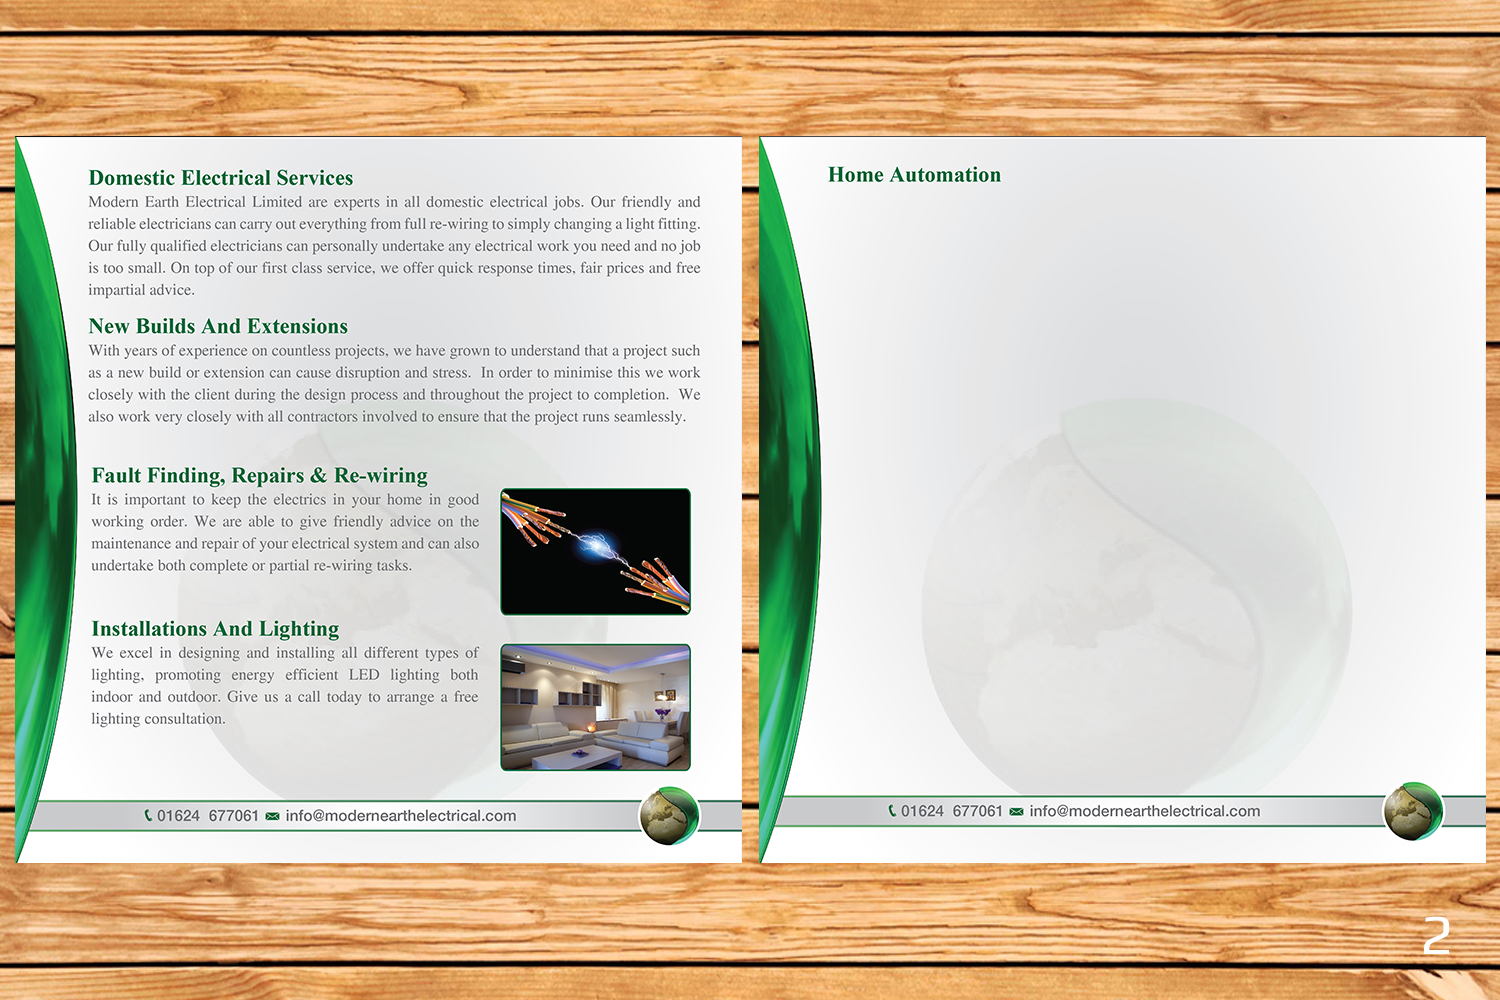 Elegant Modern Electrical Brochure Design For A Company By Home Installation Upgrade Importance Designanddevelopment This Project 12689394